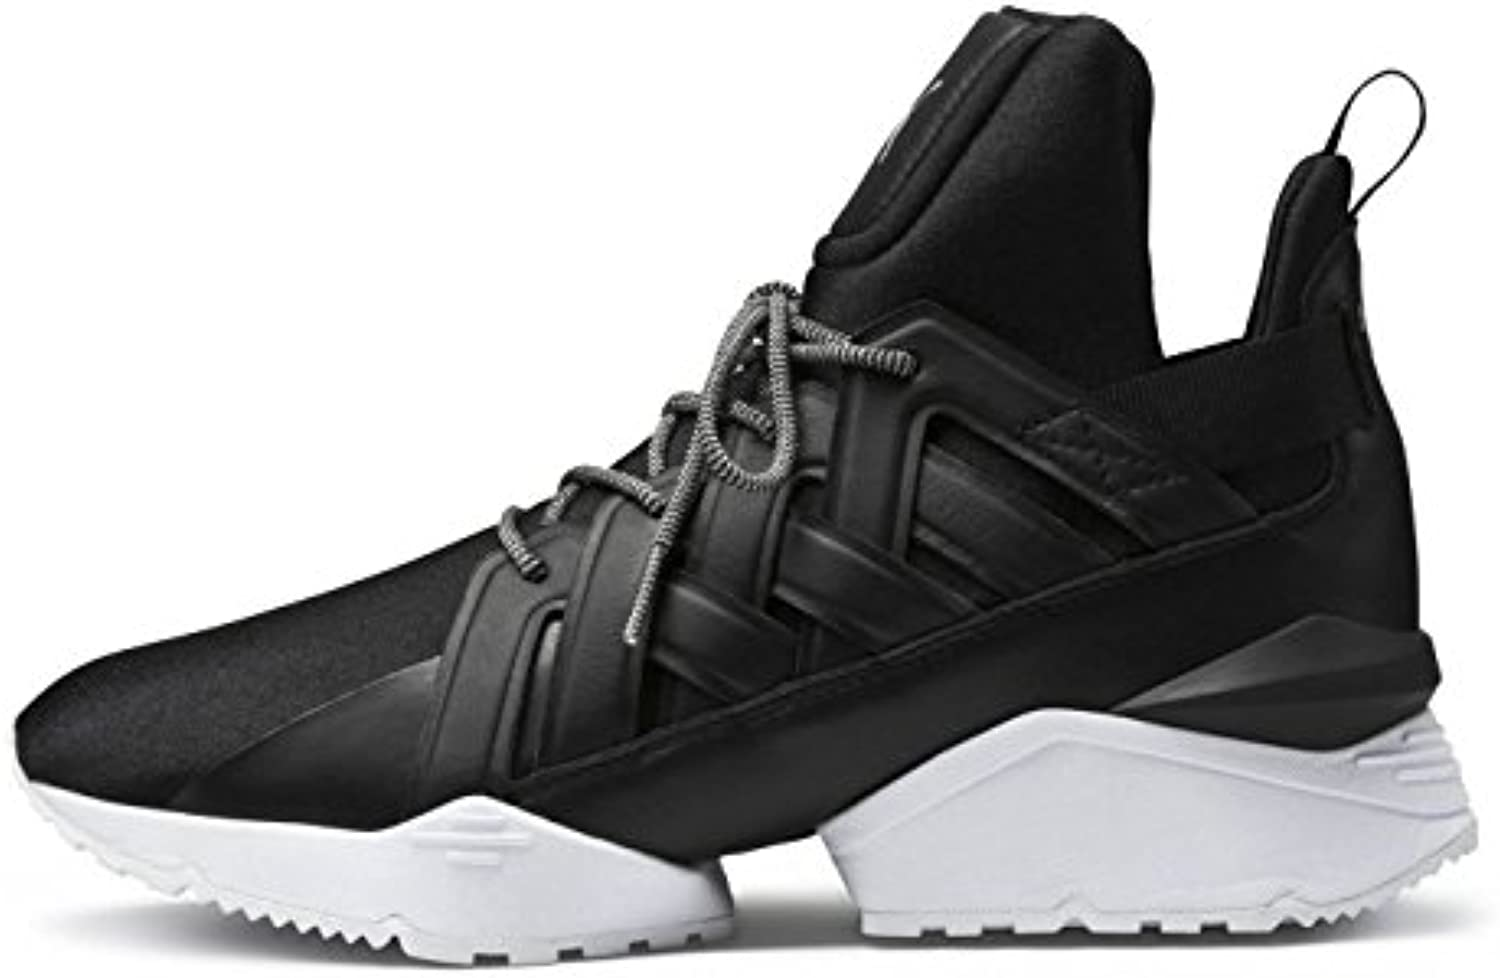 48c3fcb4486 PUMA Women s Muse Echo Satin EP Black Women s White White 10.5 PUMA B US  B073WHFKQ4 Parent c1f9ad1